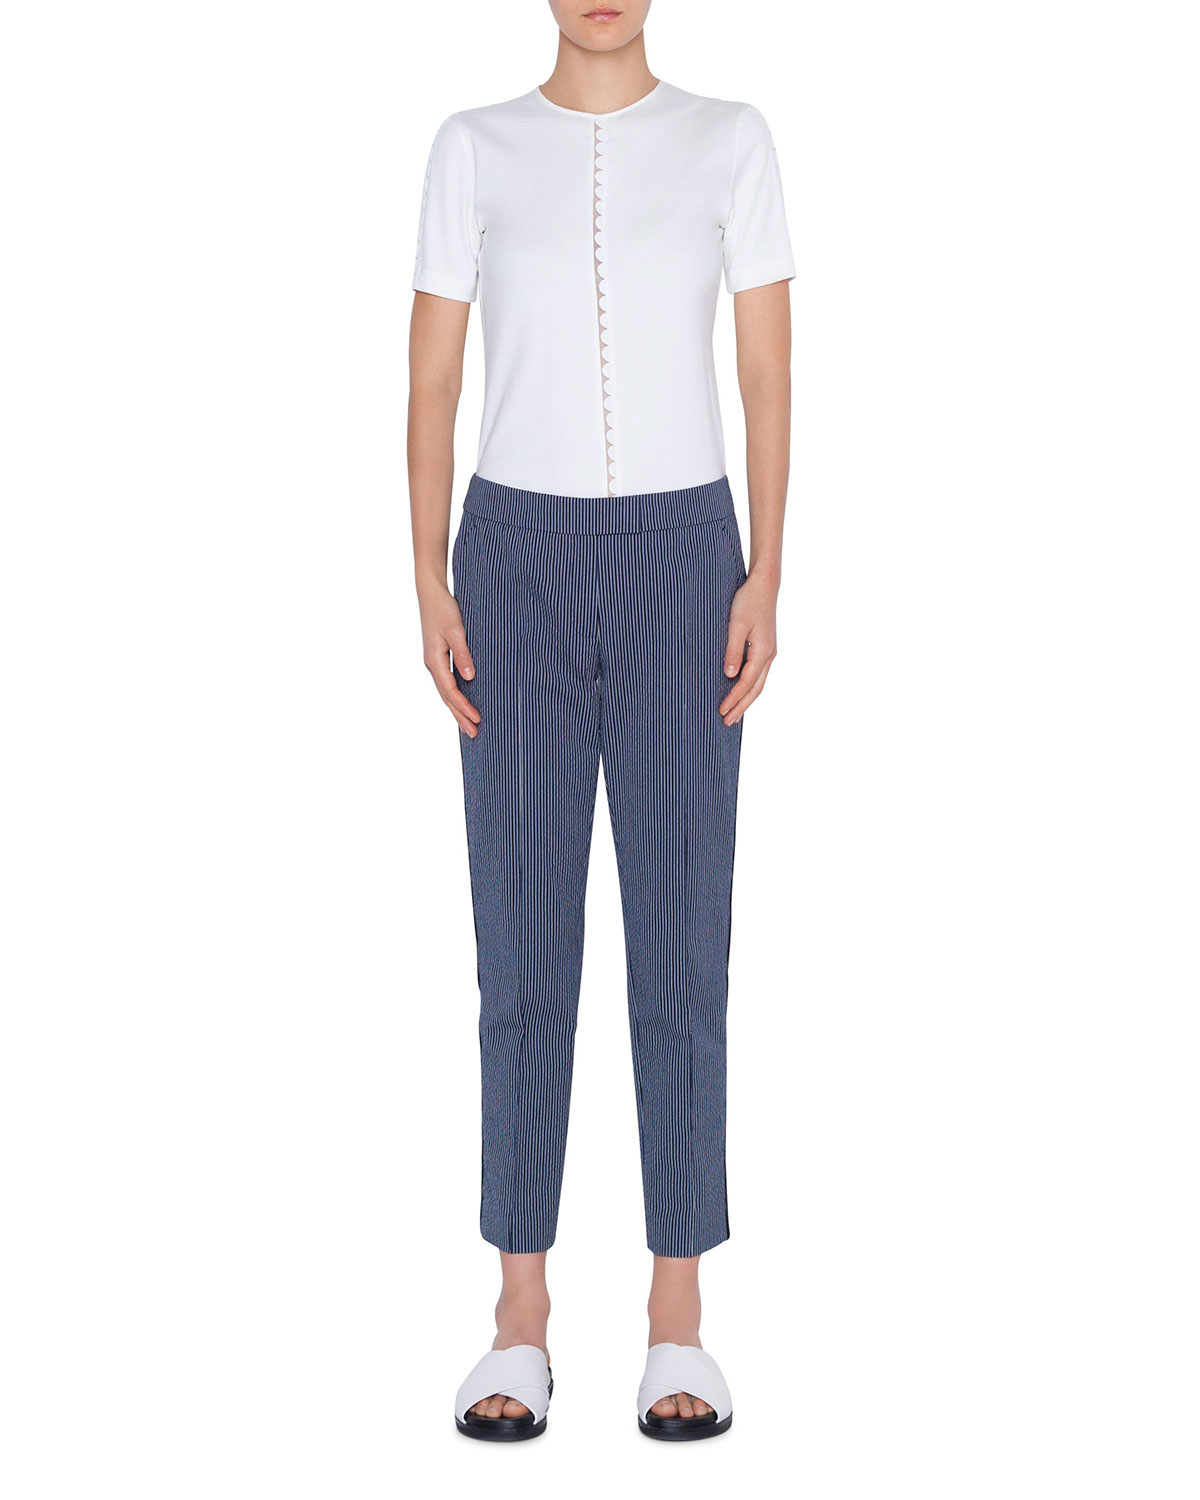 Akris Punto Pants FRANKIE PINSTRIPED CROPPED MID-RISE PANTS